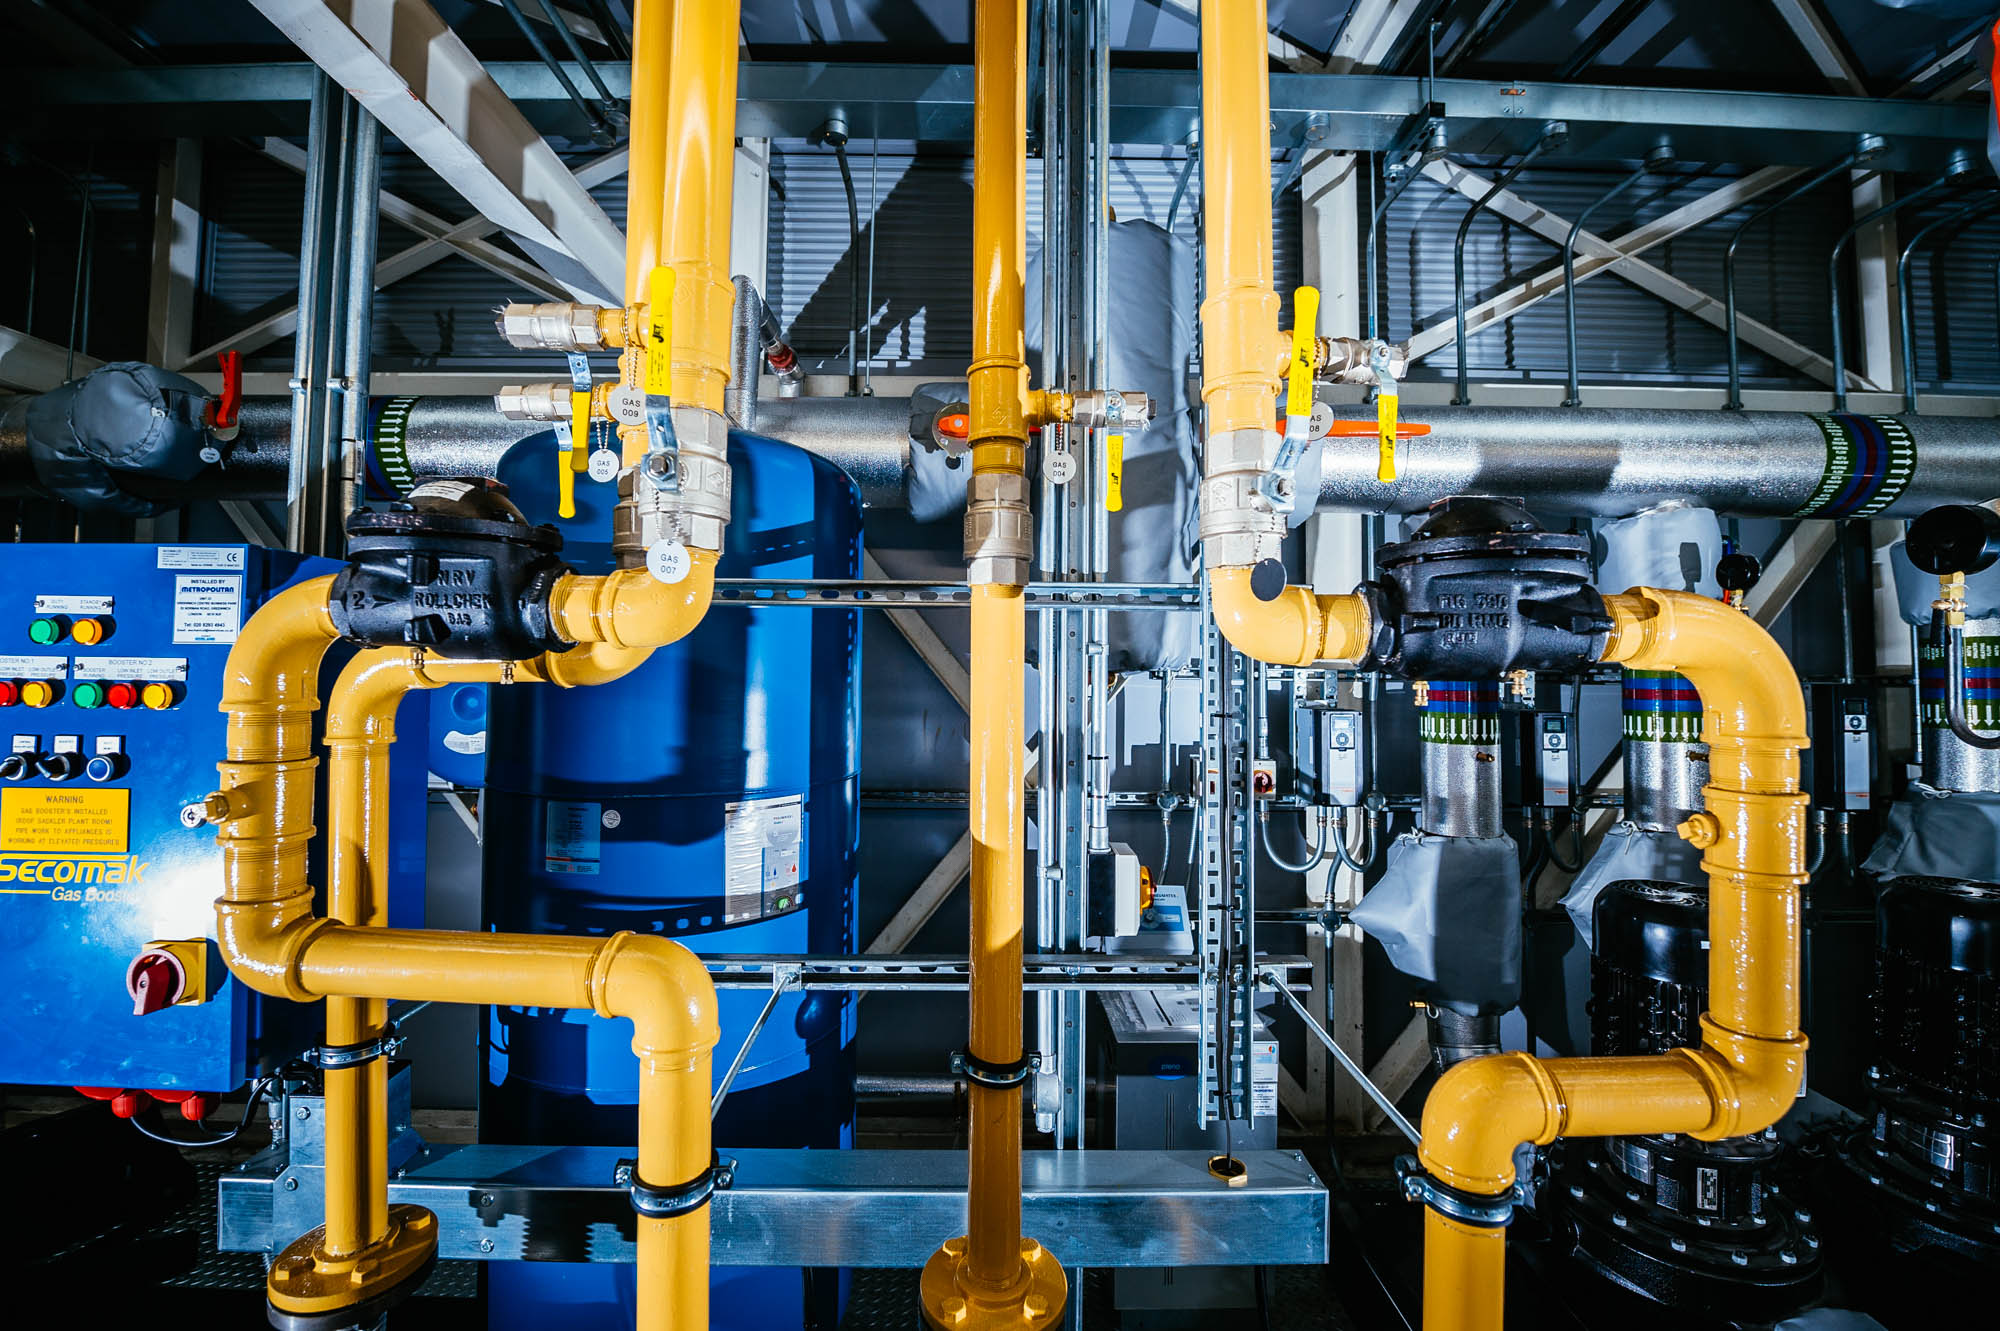 A photo of yellow and blue pipework at above an art gallery